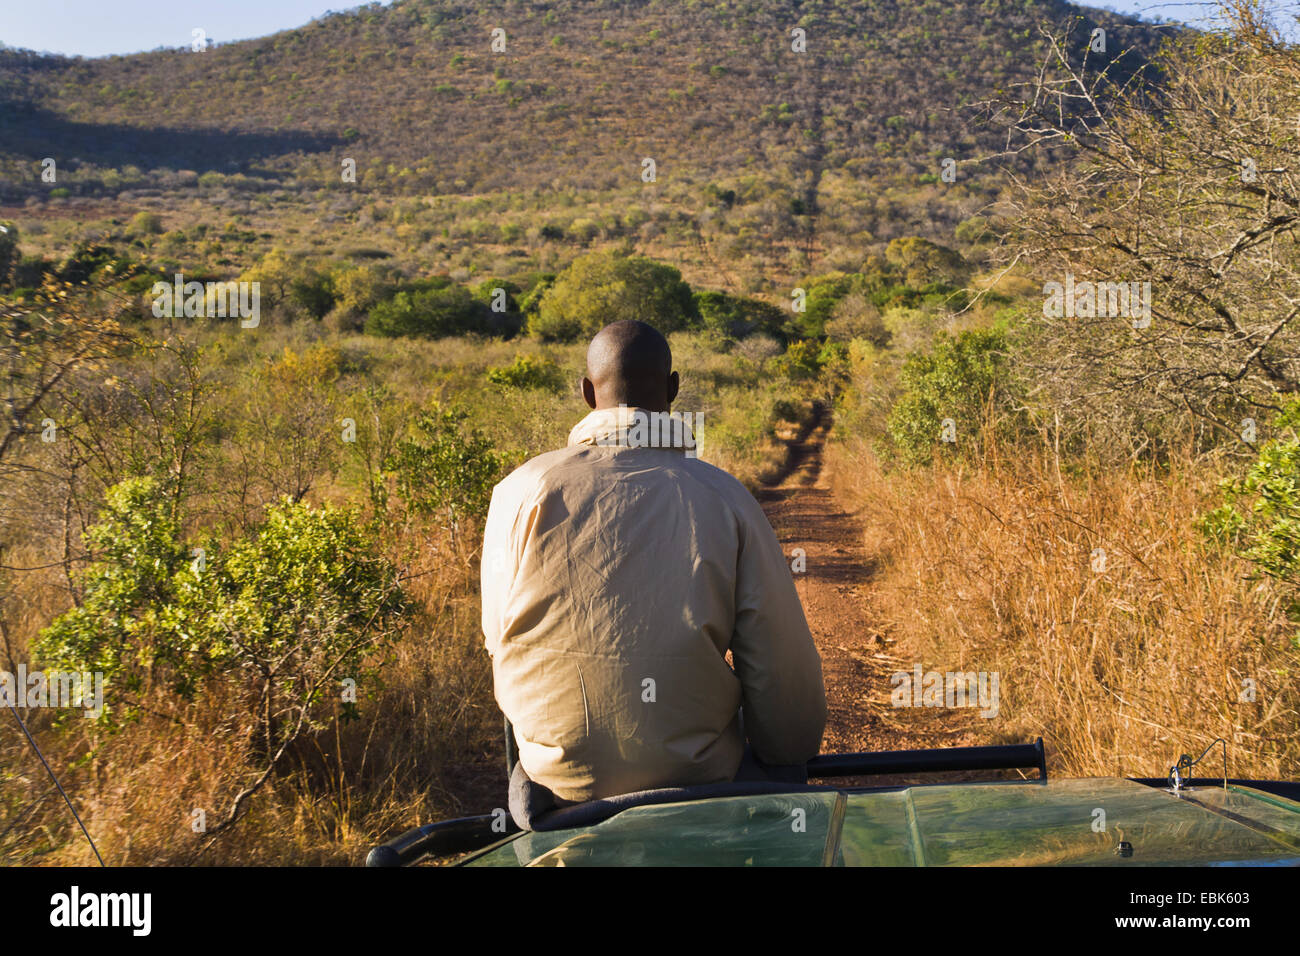 man sitting on bonnet during a safari, South Africa - Stock Image